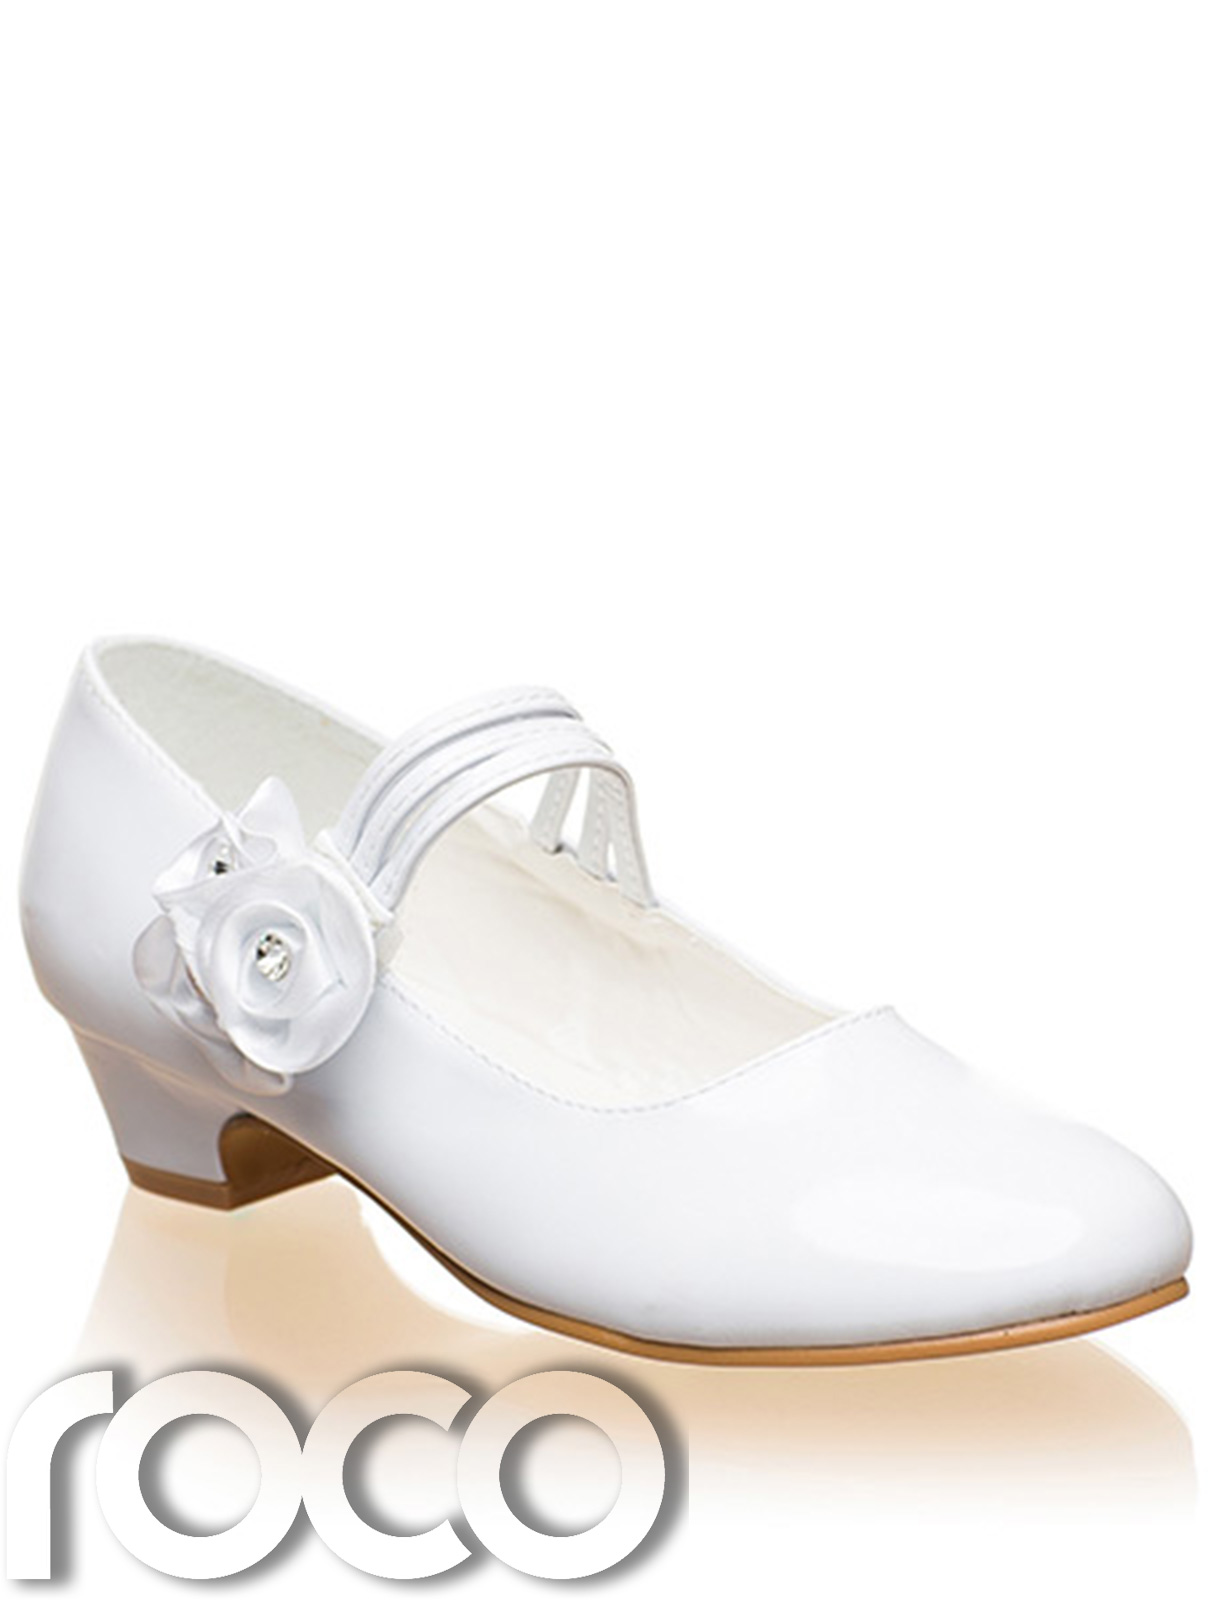 3a5f32295b4f Details about Girls White Shoes